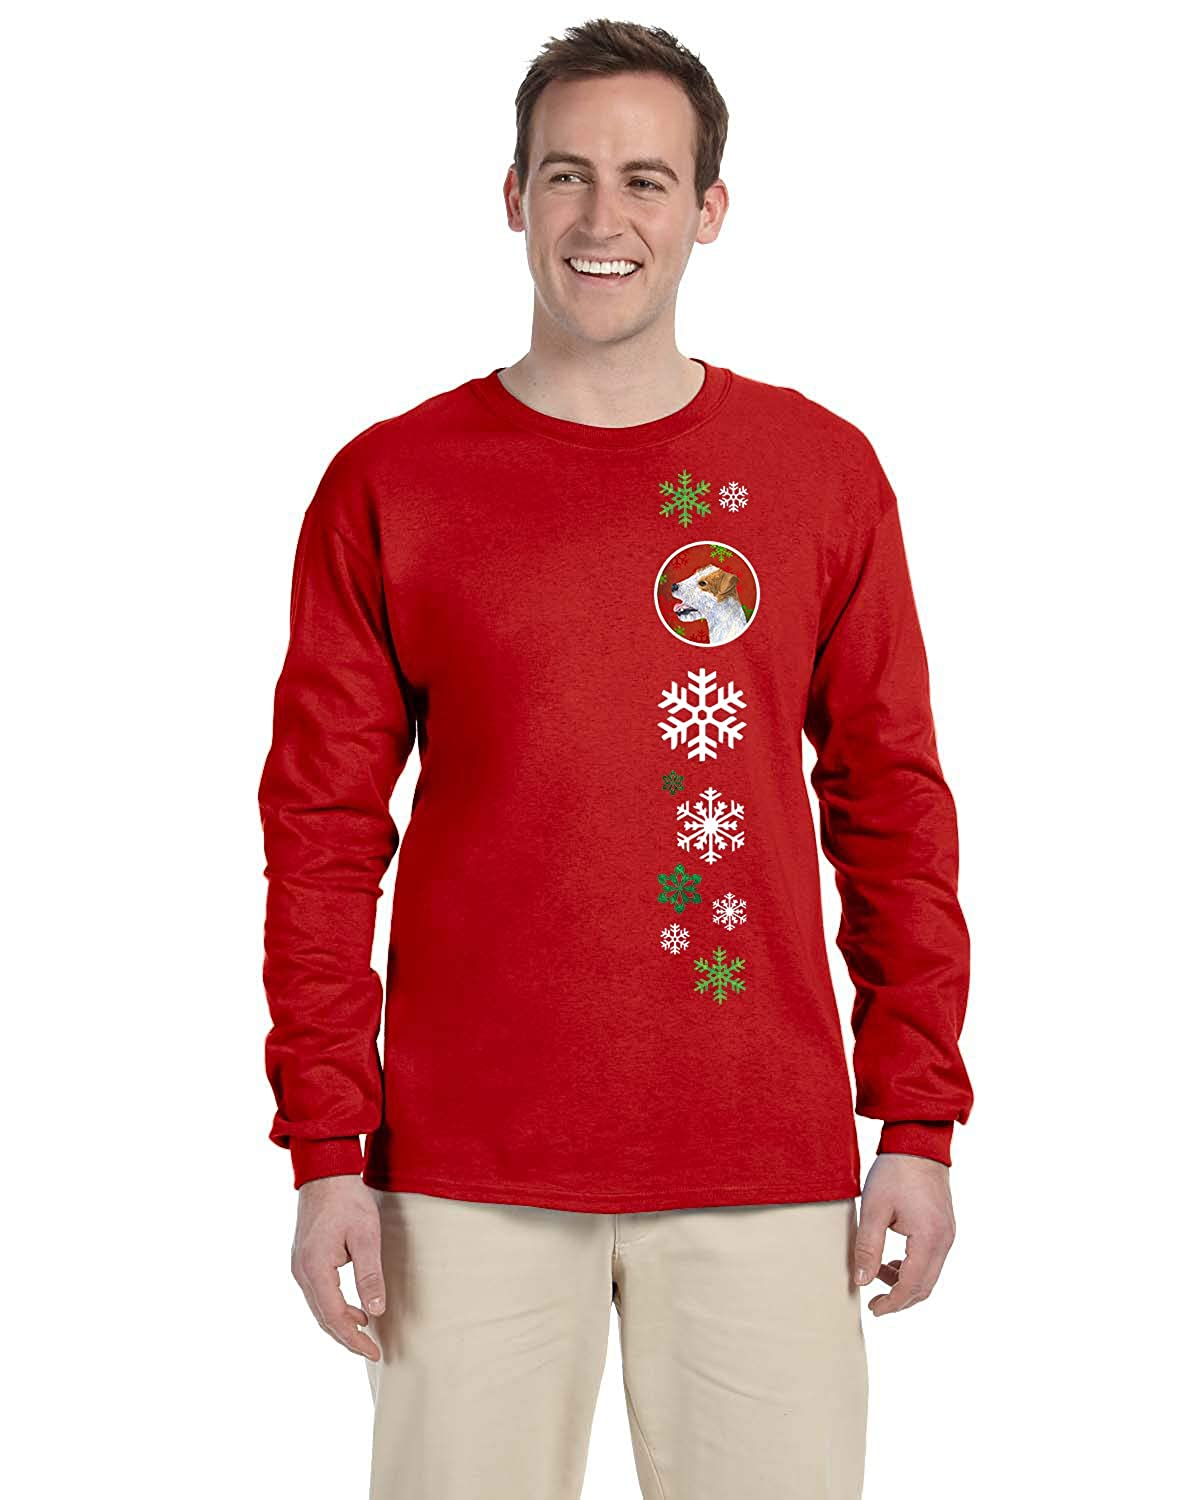 Carolines Treasures SS4711-LS-RED-L Jack Russell Terrier Red Snowflakes Long Sleeve Red Unisex Tshirt Adult Large Multicolor L